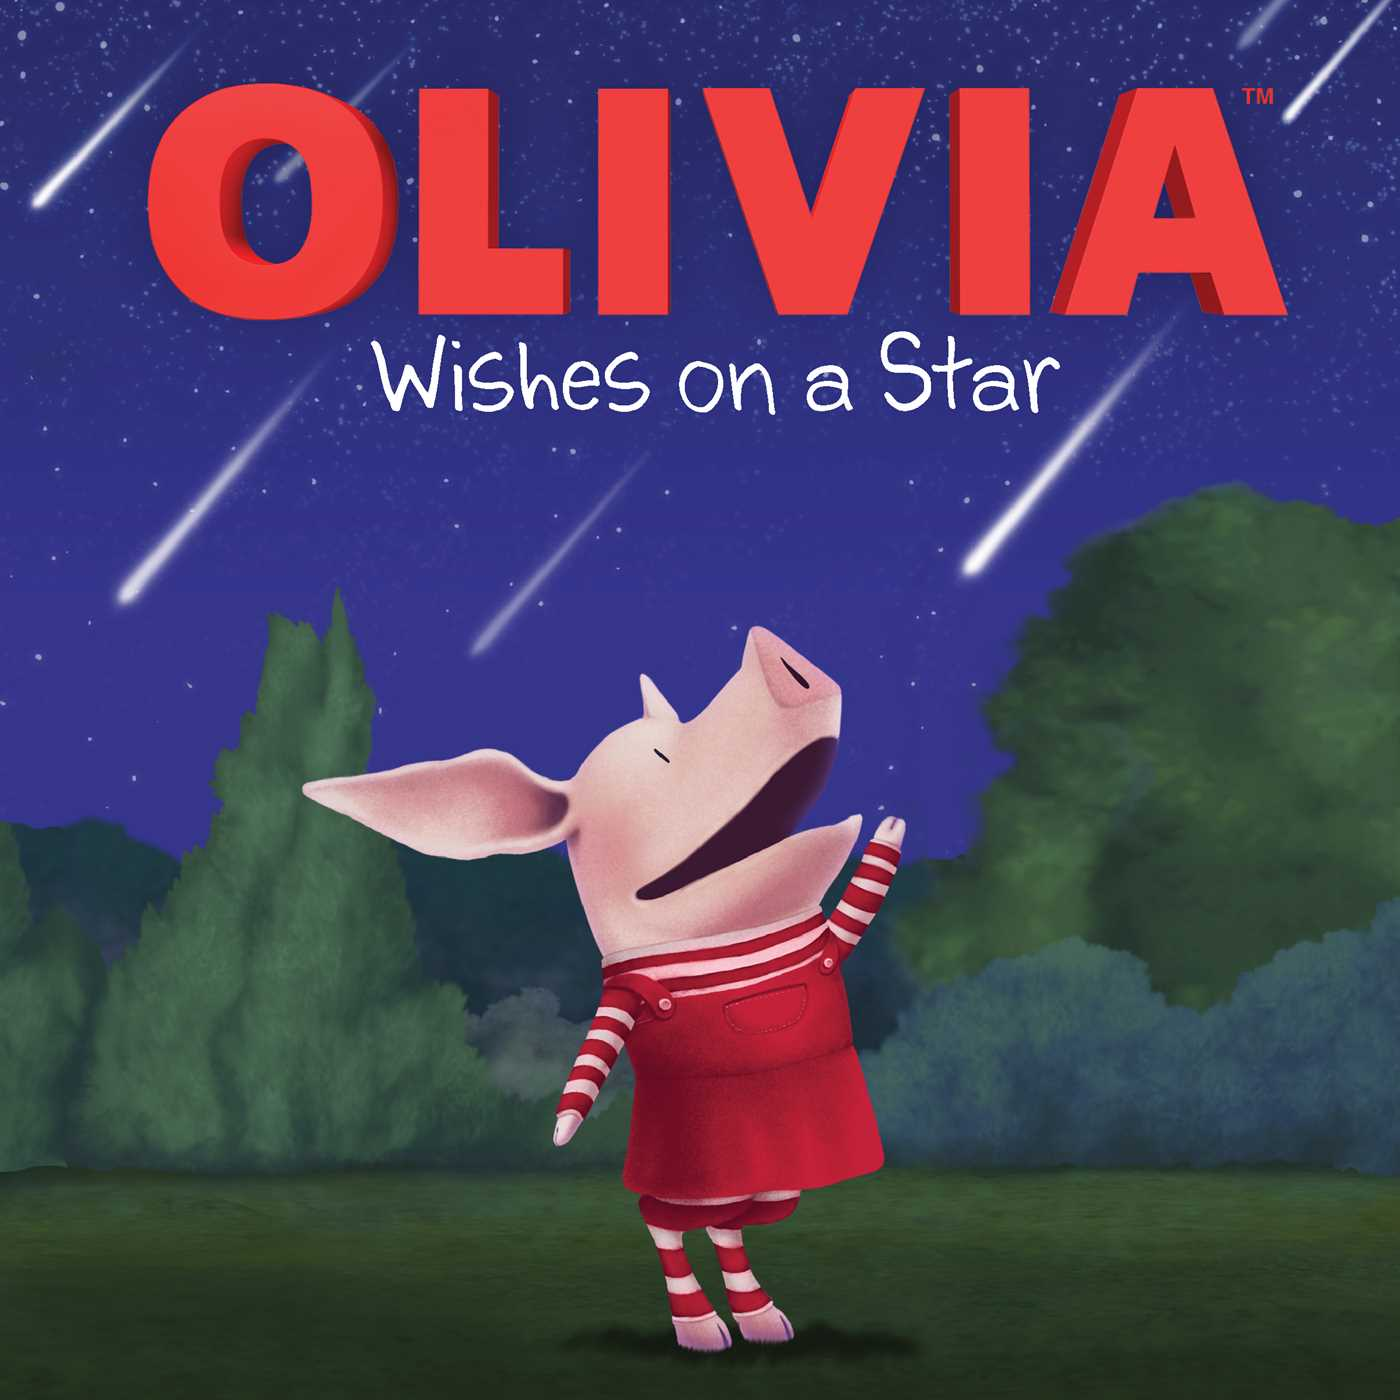 Olivia wishes on a star 9781481417693 hr